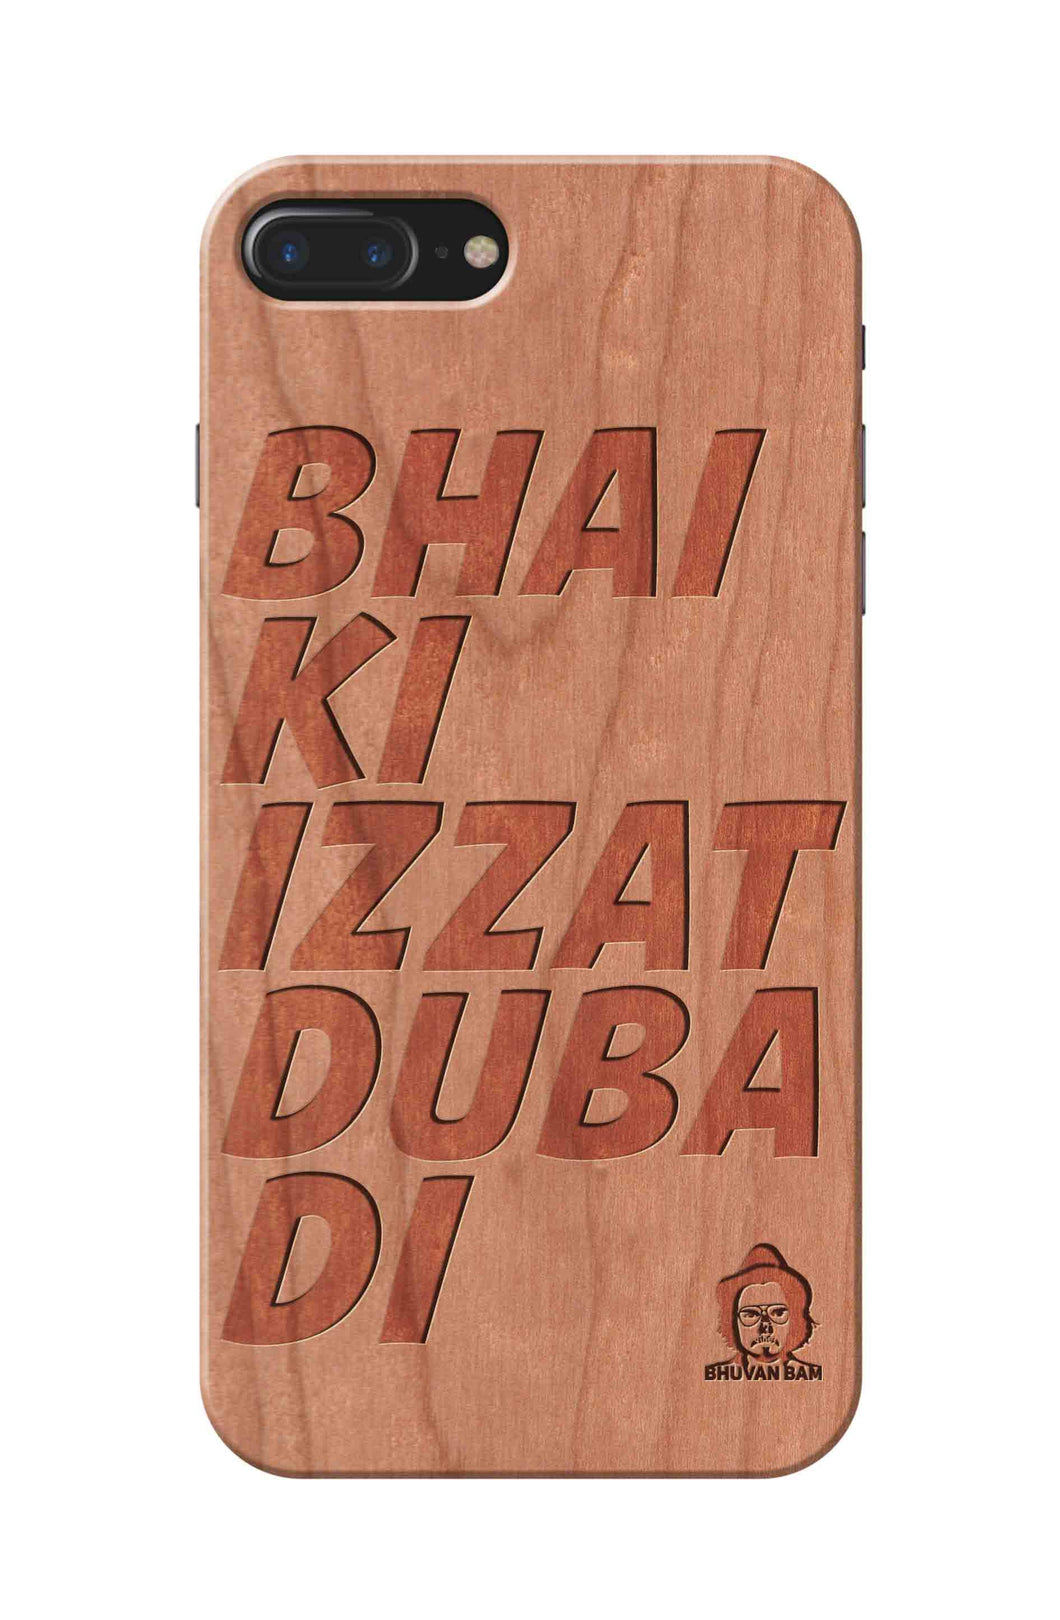 Cherry Wood Izzat Edition for I phone 7 plus